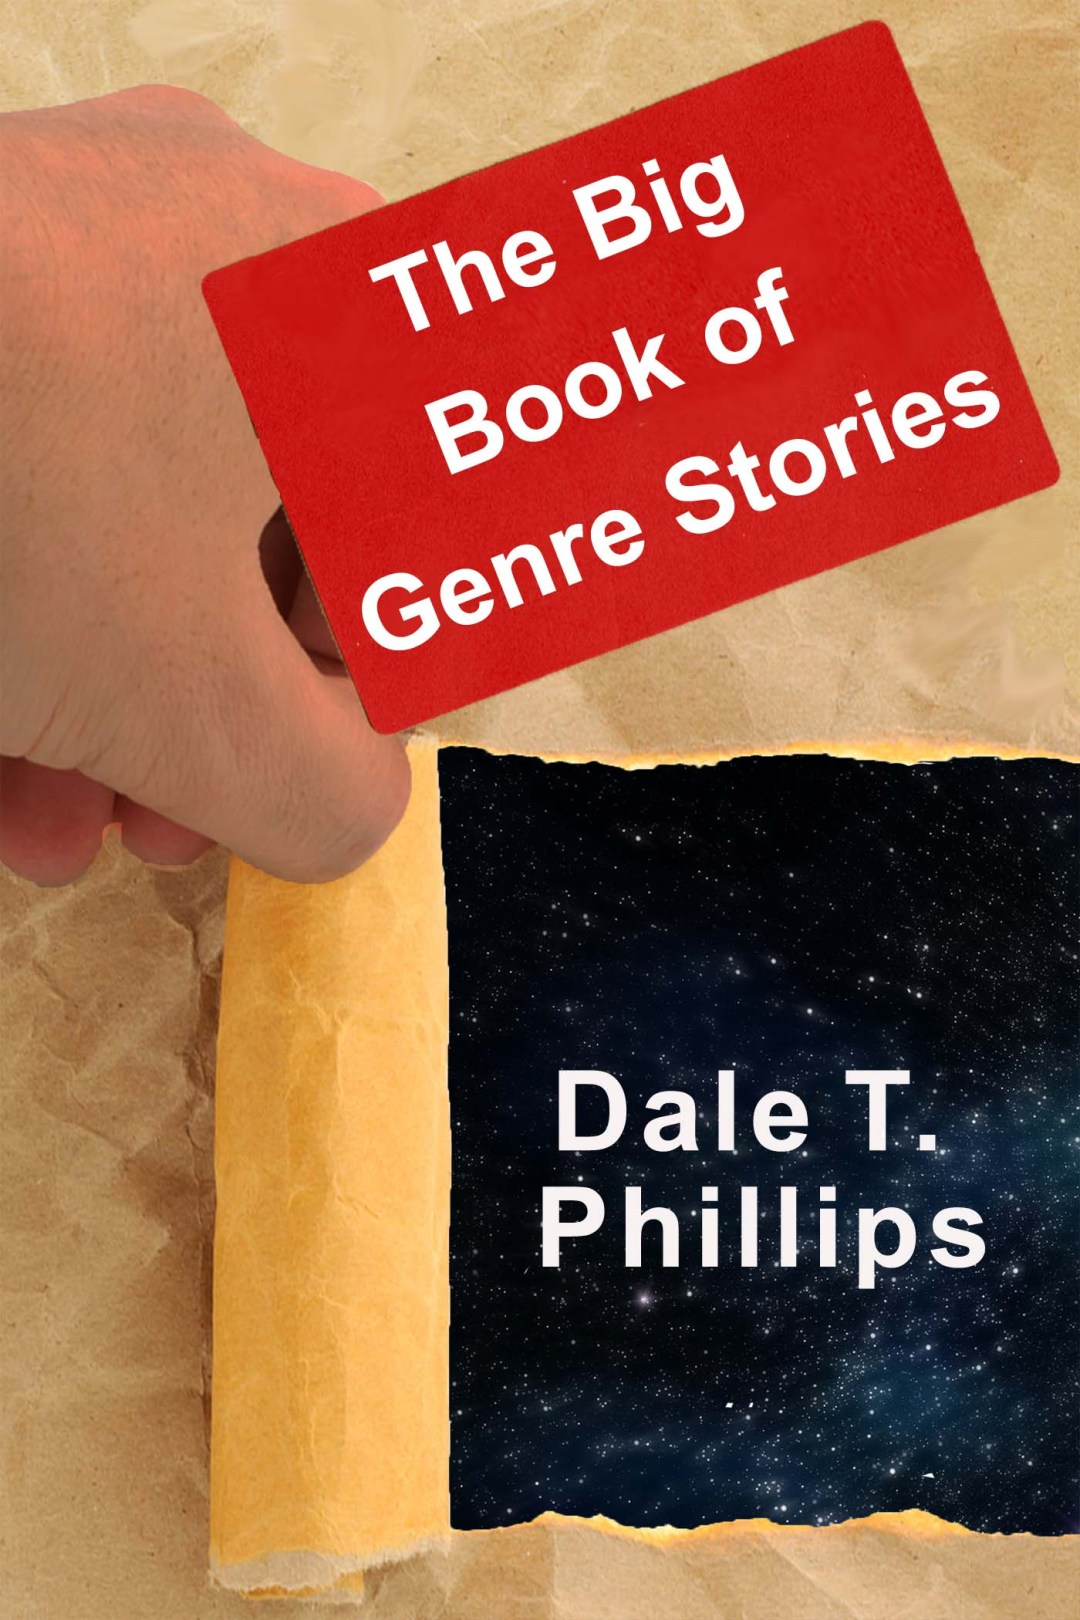 The Big Book of Genre Stories, short stories by Dale T. Phillips